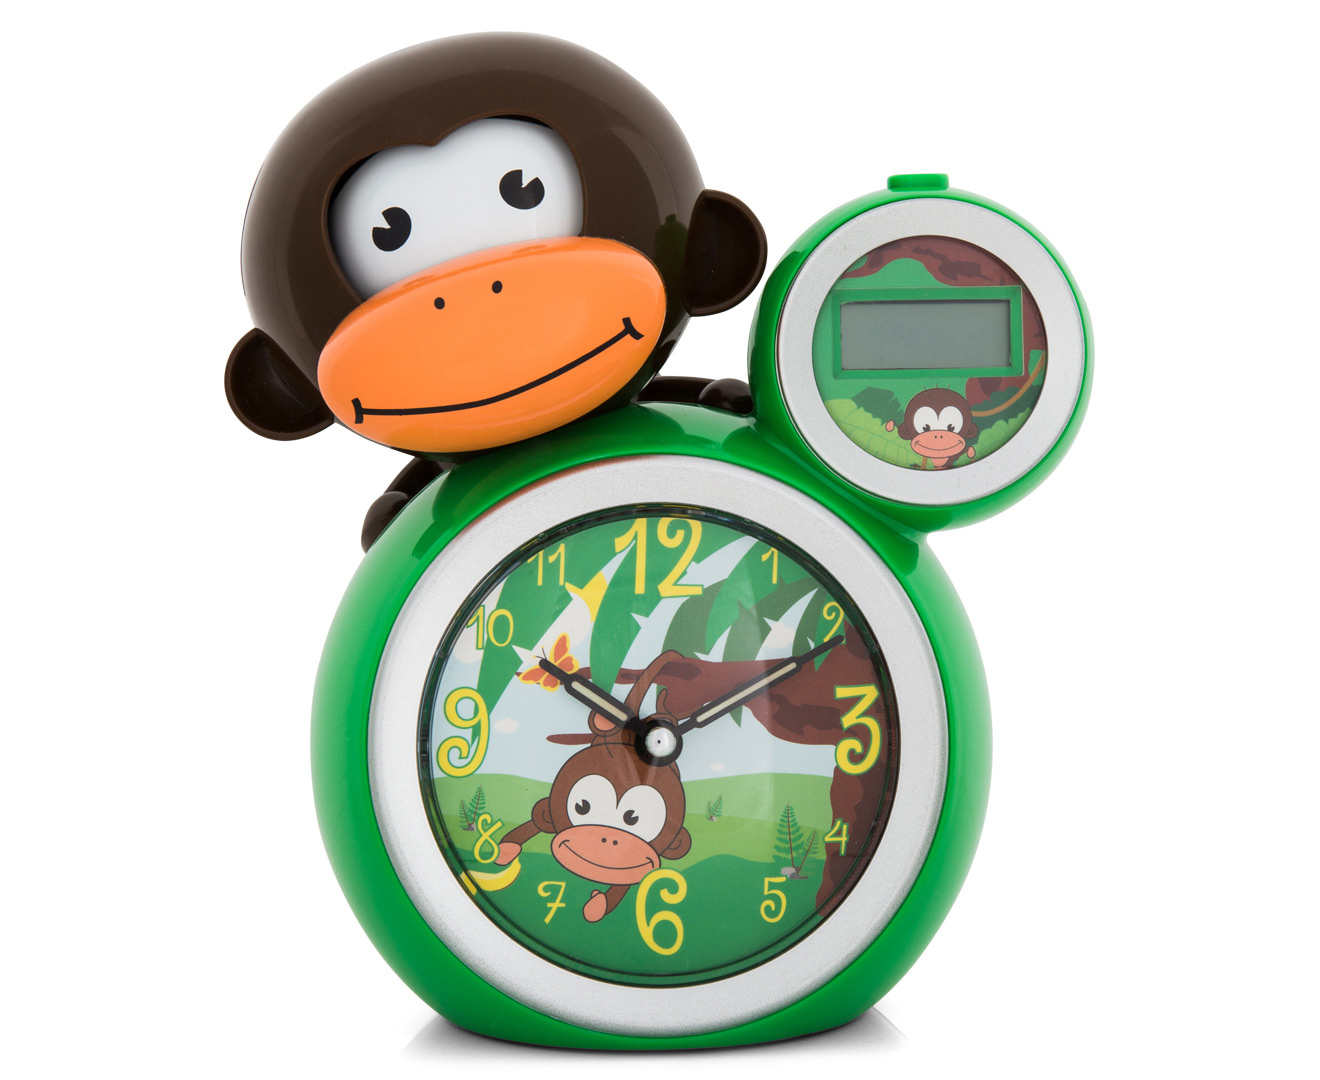 babyzoo sleep trainer clock instructions